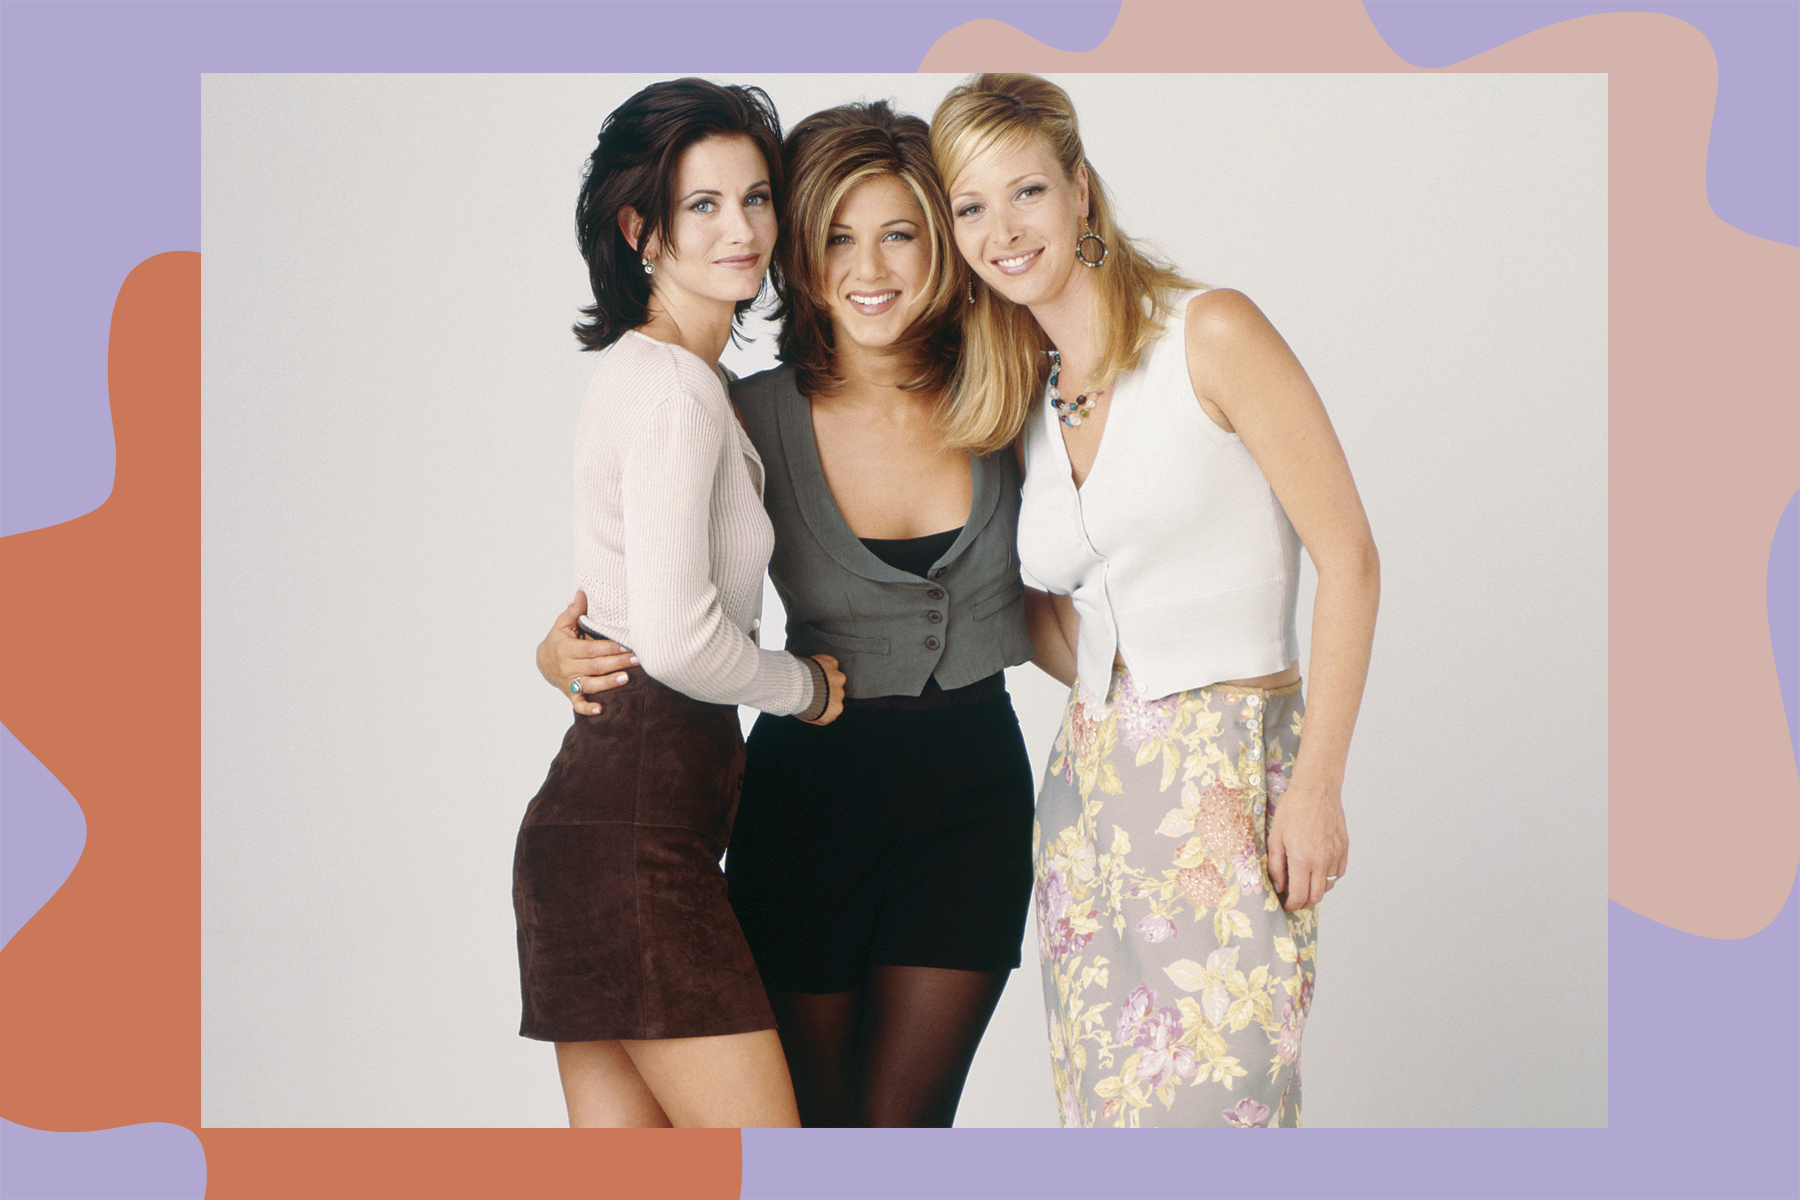 rachel green outfits monica geller outfits phoebe buffay outfits